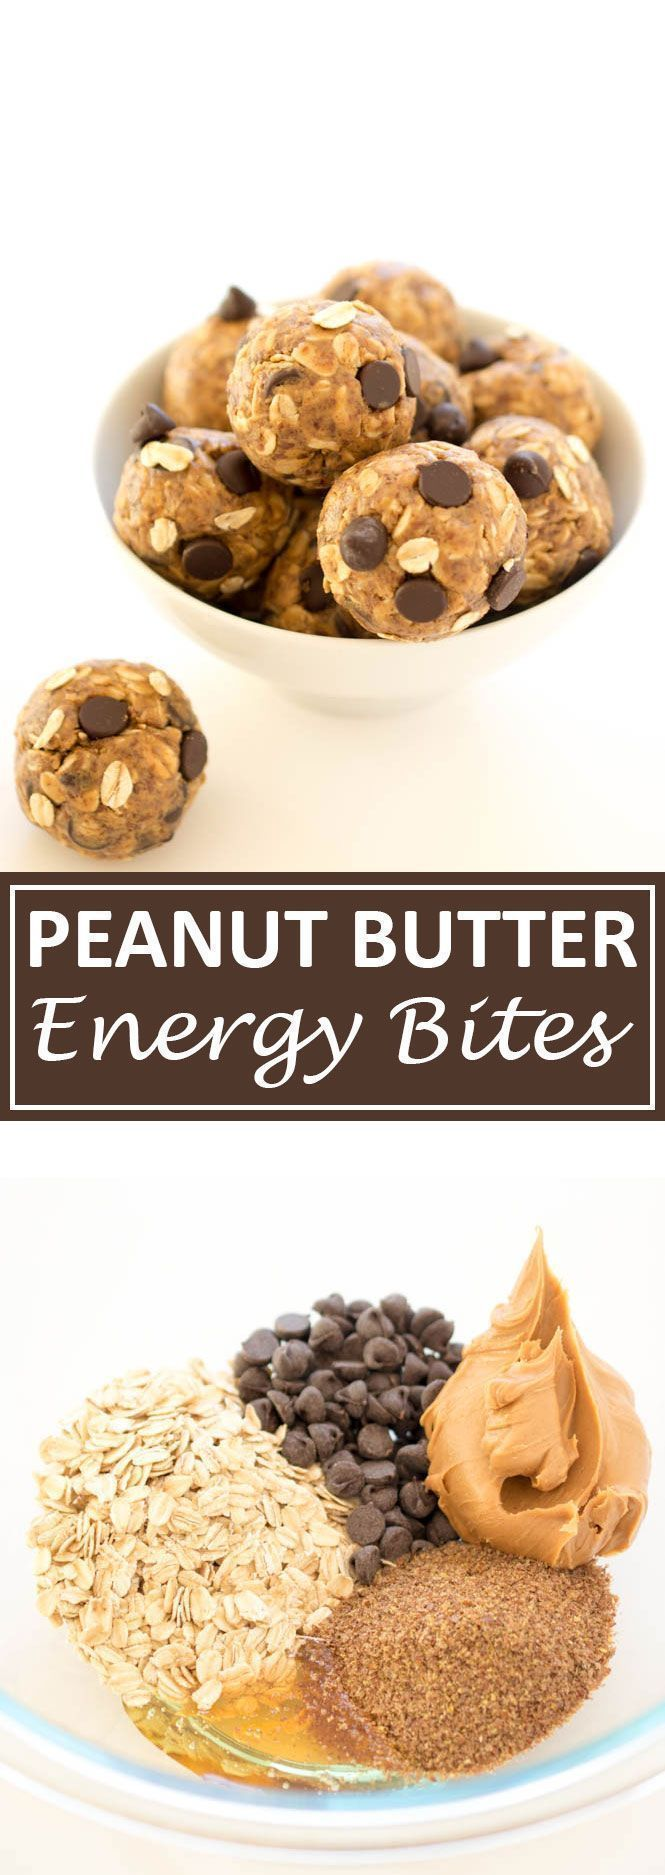 5 Ingredient Peanut Butter Energy Bites http://www.weightlossjumps.com/does-eat-stop-eat-work/